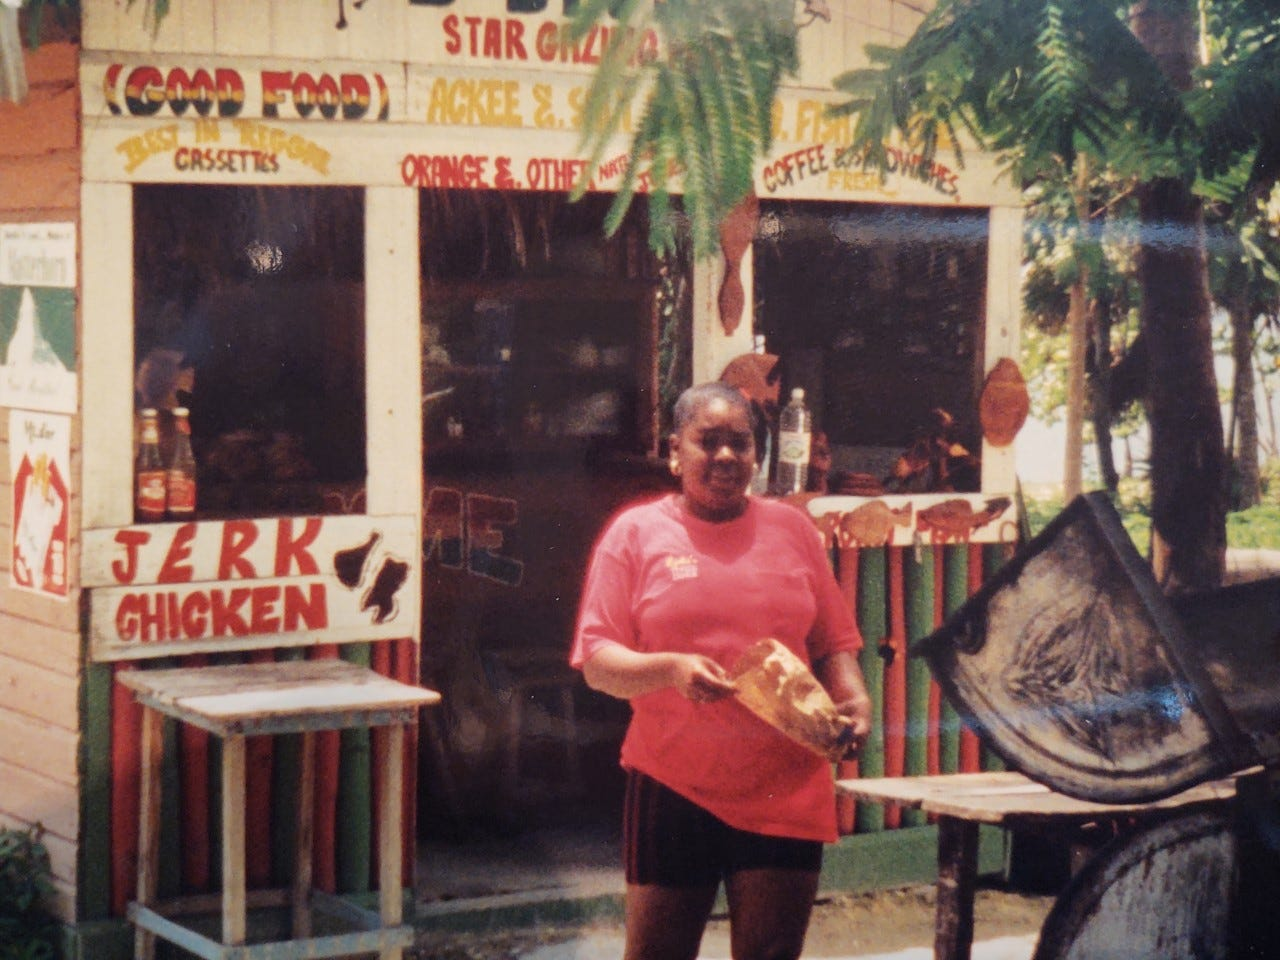 One of the most characteristic sights in Jamaica, found all over the island, is the Jerk chicken stand. This one is in Negril.